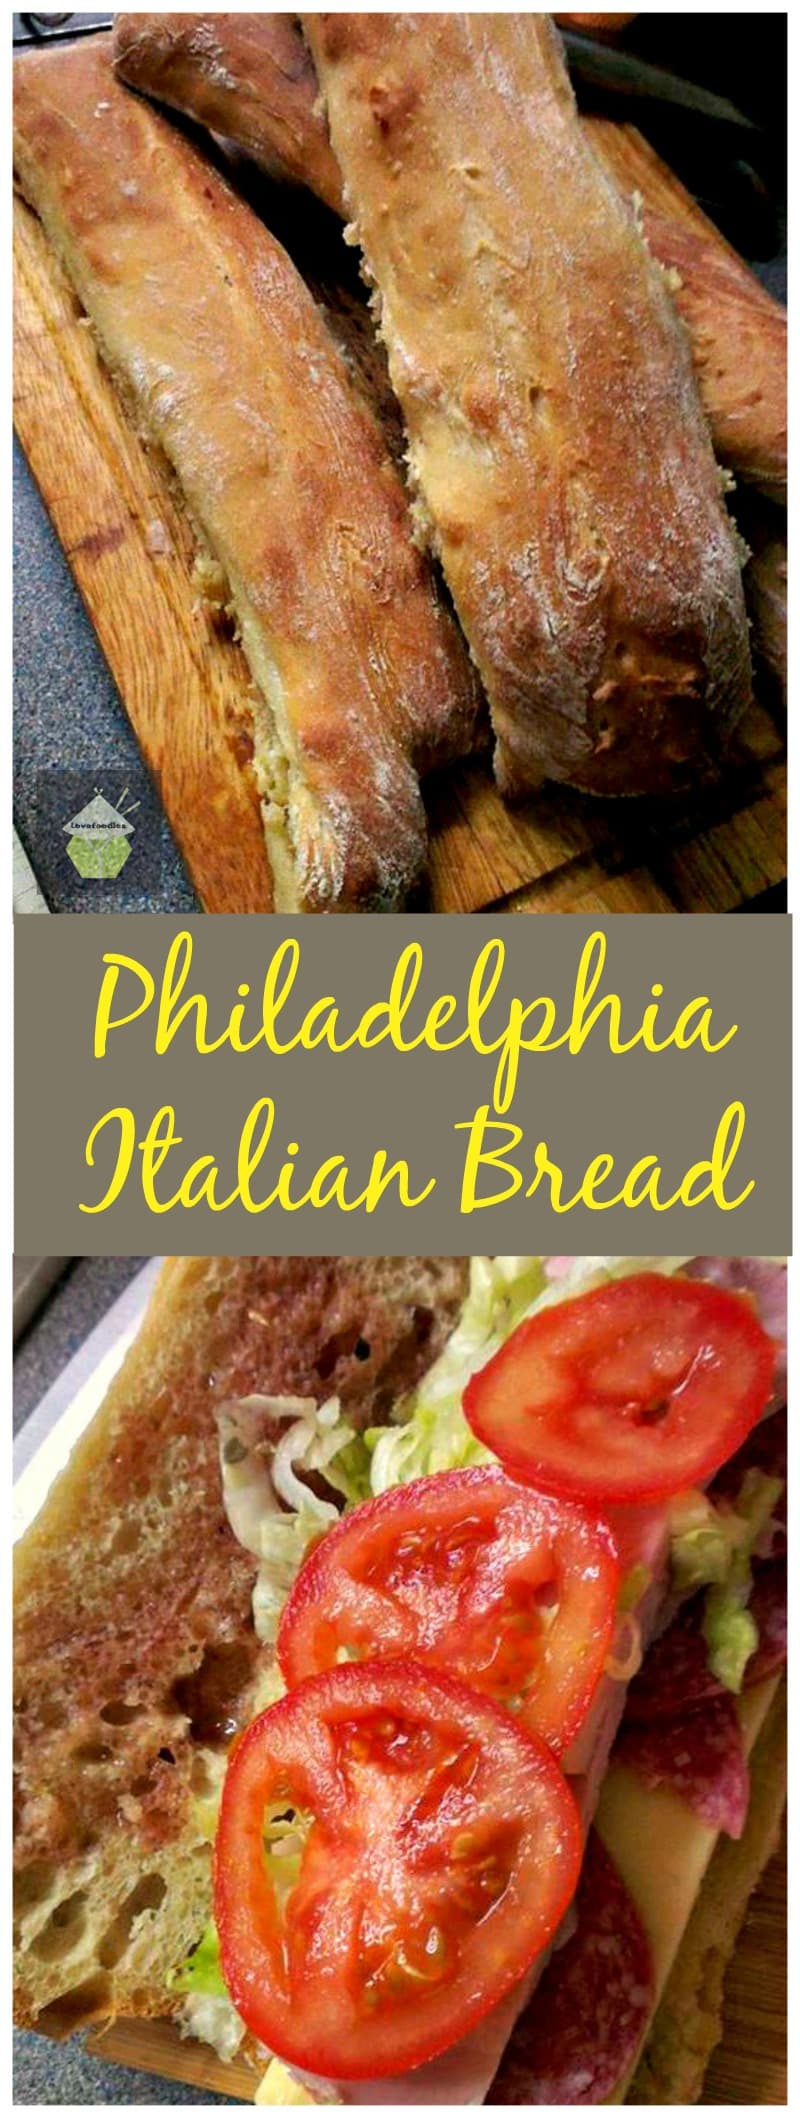 Philadelphia Italian Bread - Easy recipe made by hand and great for Cheese Steak Sandwiches, cutting into slices and using in dips..fantastic party food too!